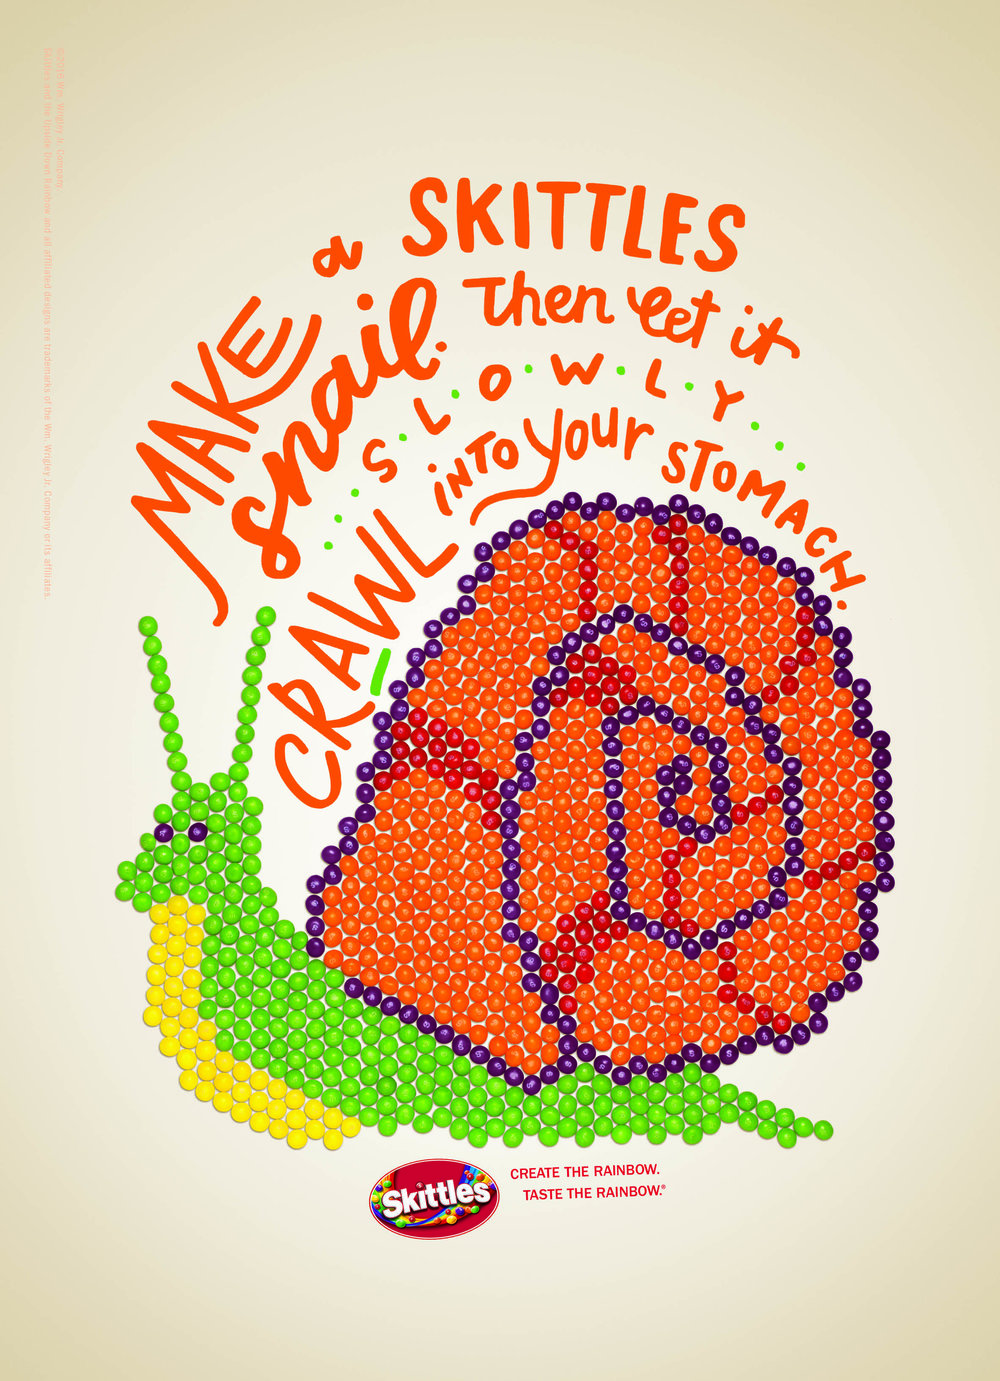 advertisement, skittles client, hand lettering